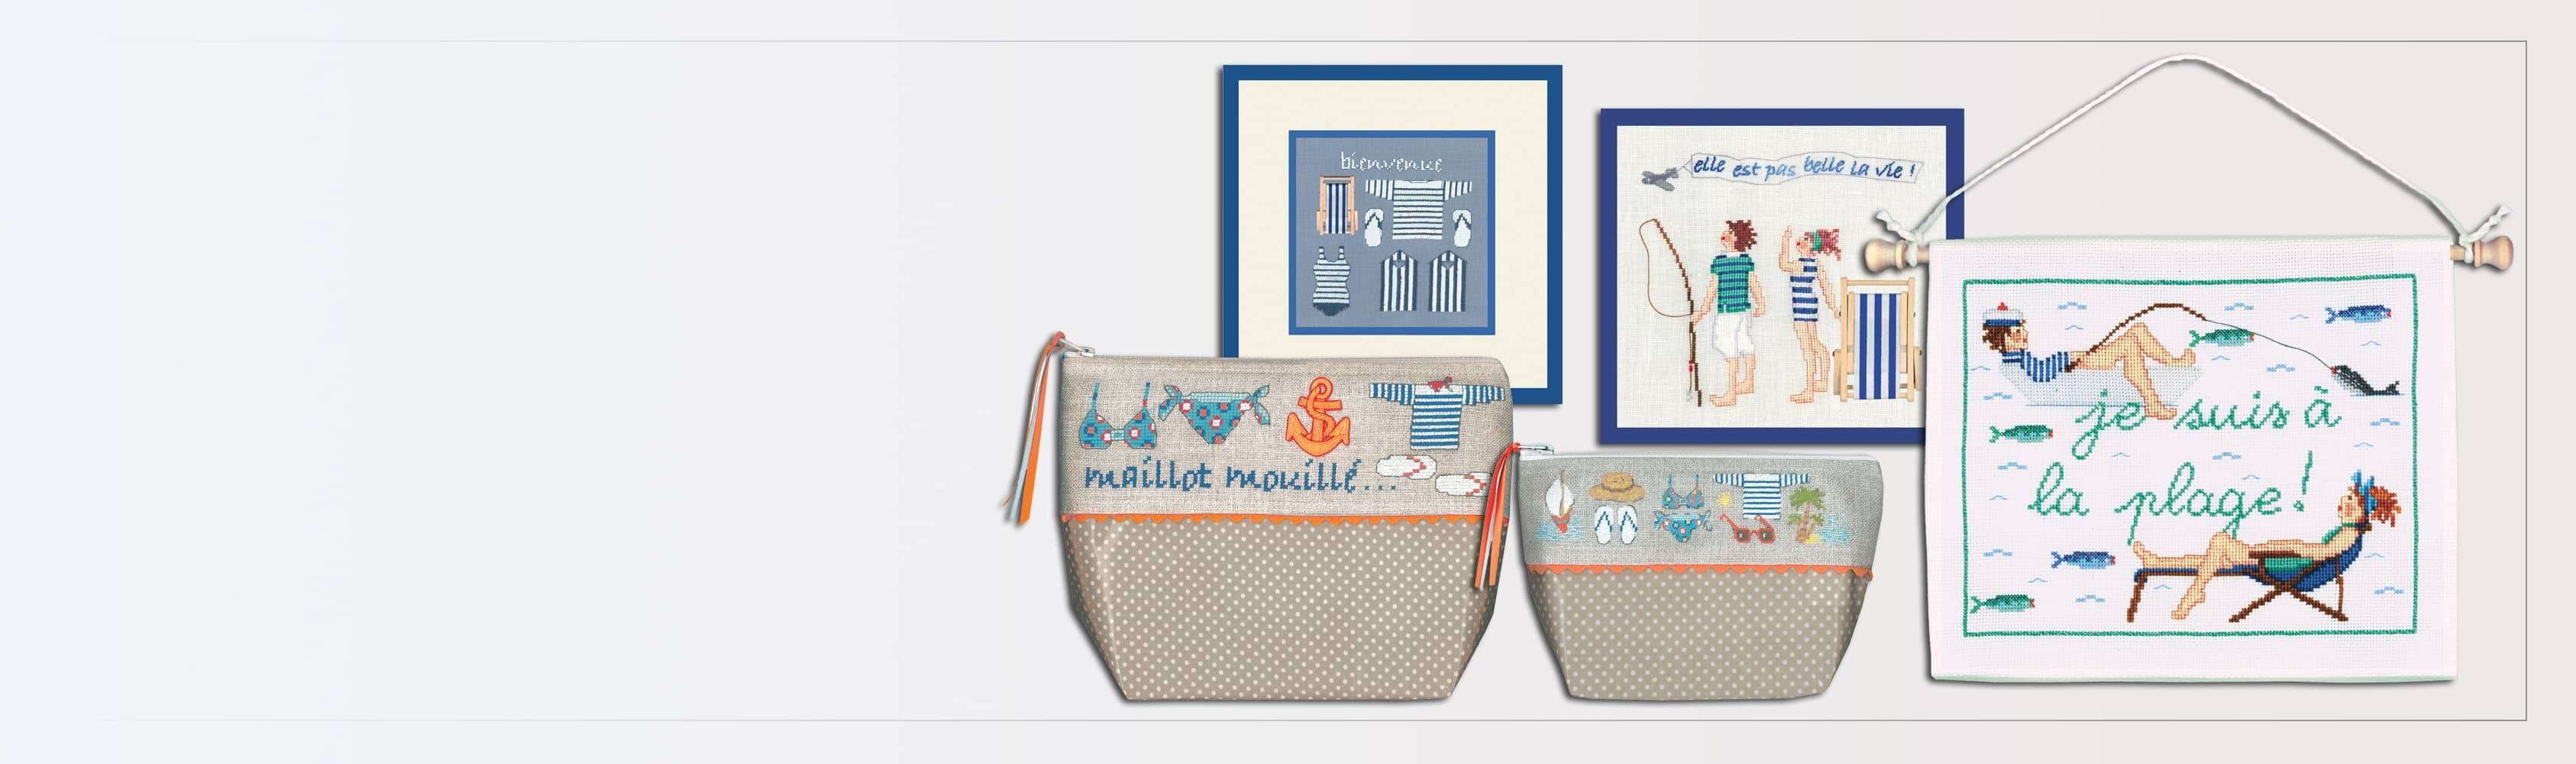 Kits and accessories to embroider. Theme: seaside and beach. Design by Cécile Vessière for Le Bonheur des Dames.